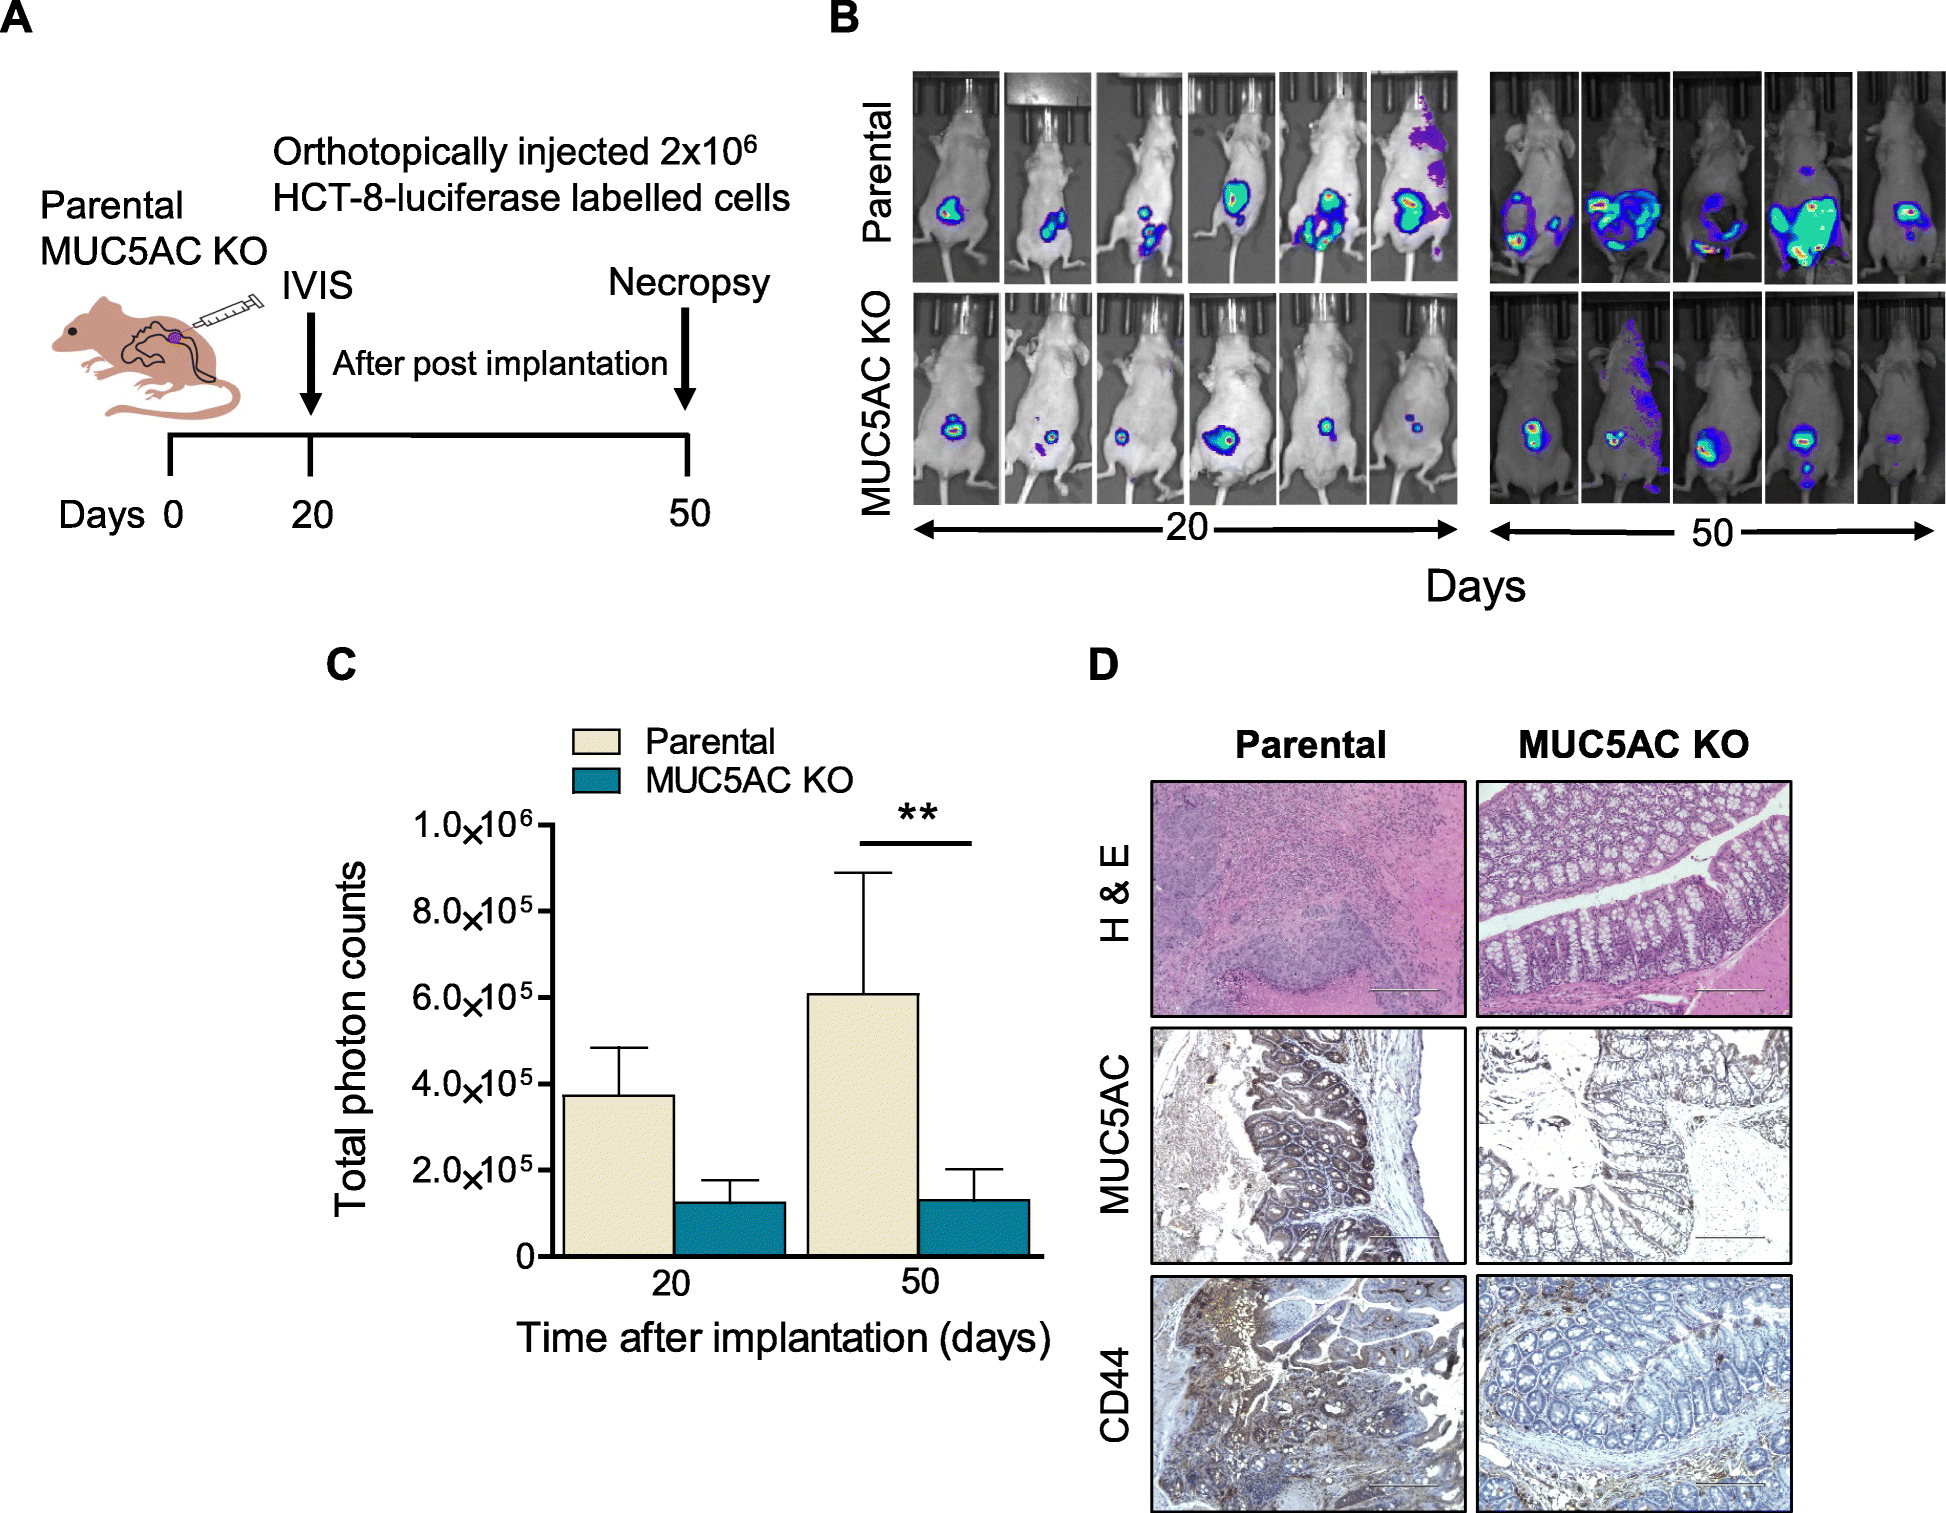 Molecular Implications Of Muc5ac Cd44 Axis In Colorectal Cancer Progression And Chemoresistance Molecular Cancer Full Text